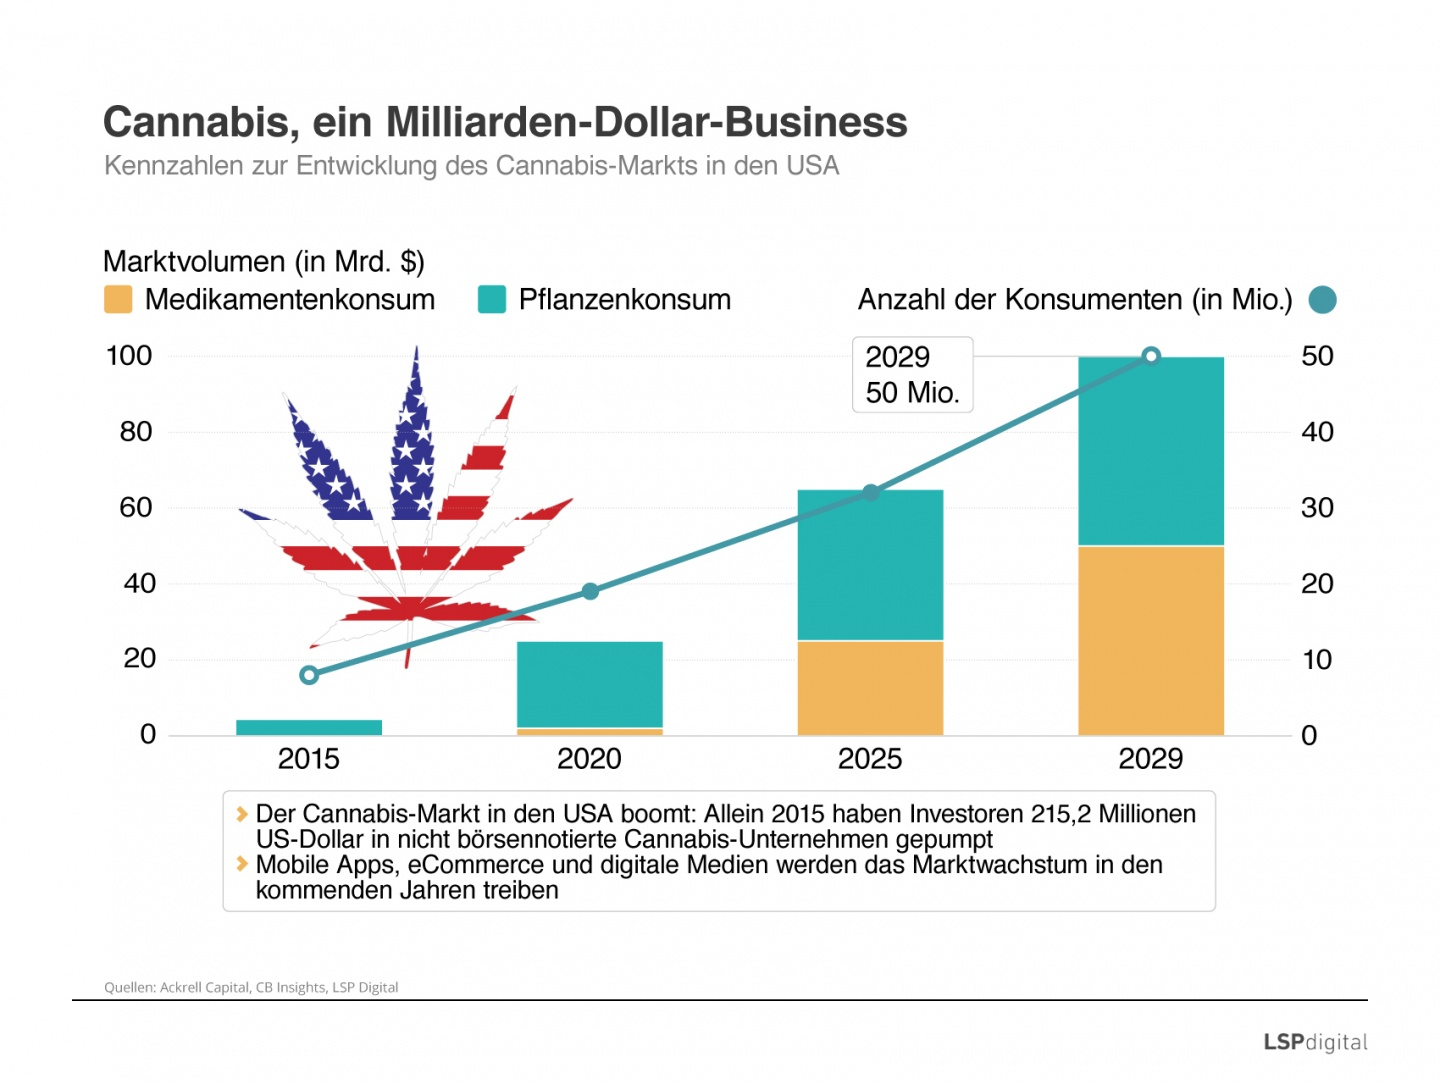 Cannabis, ein Milliarden-Dollar-Business